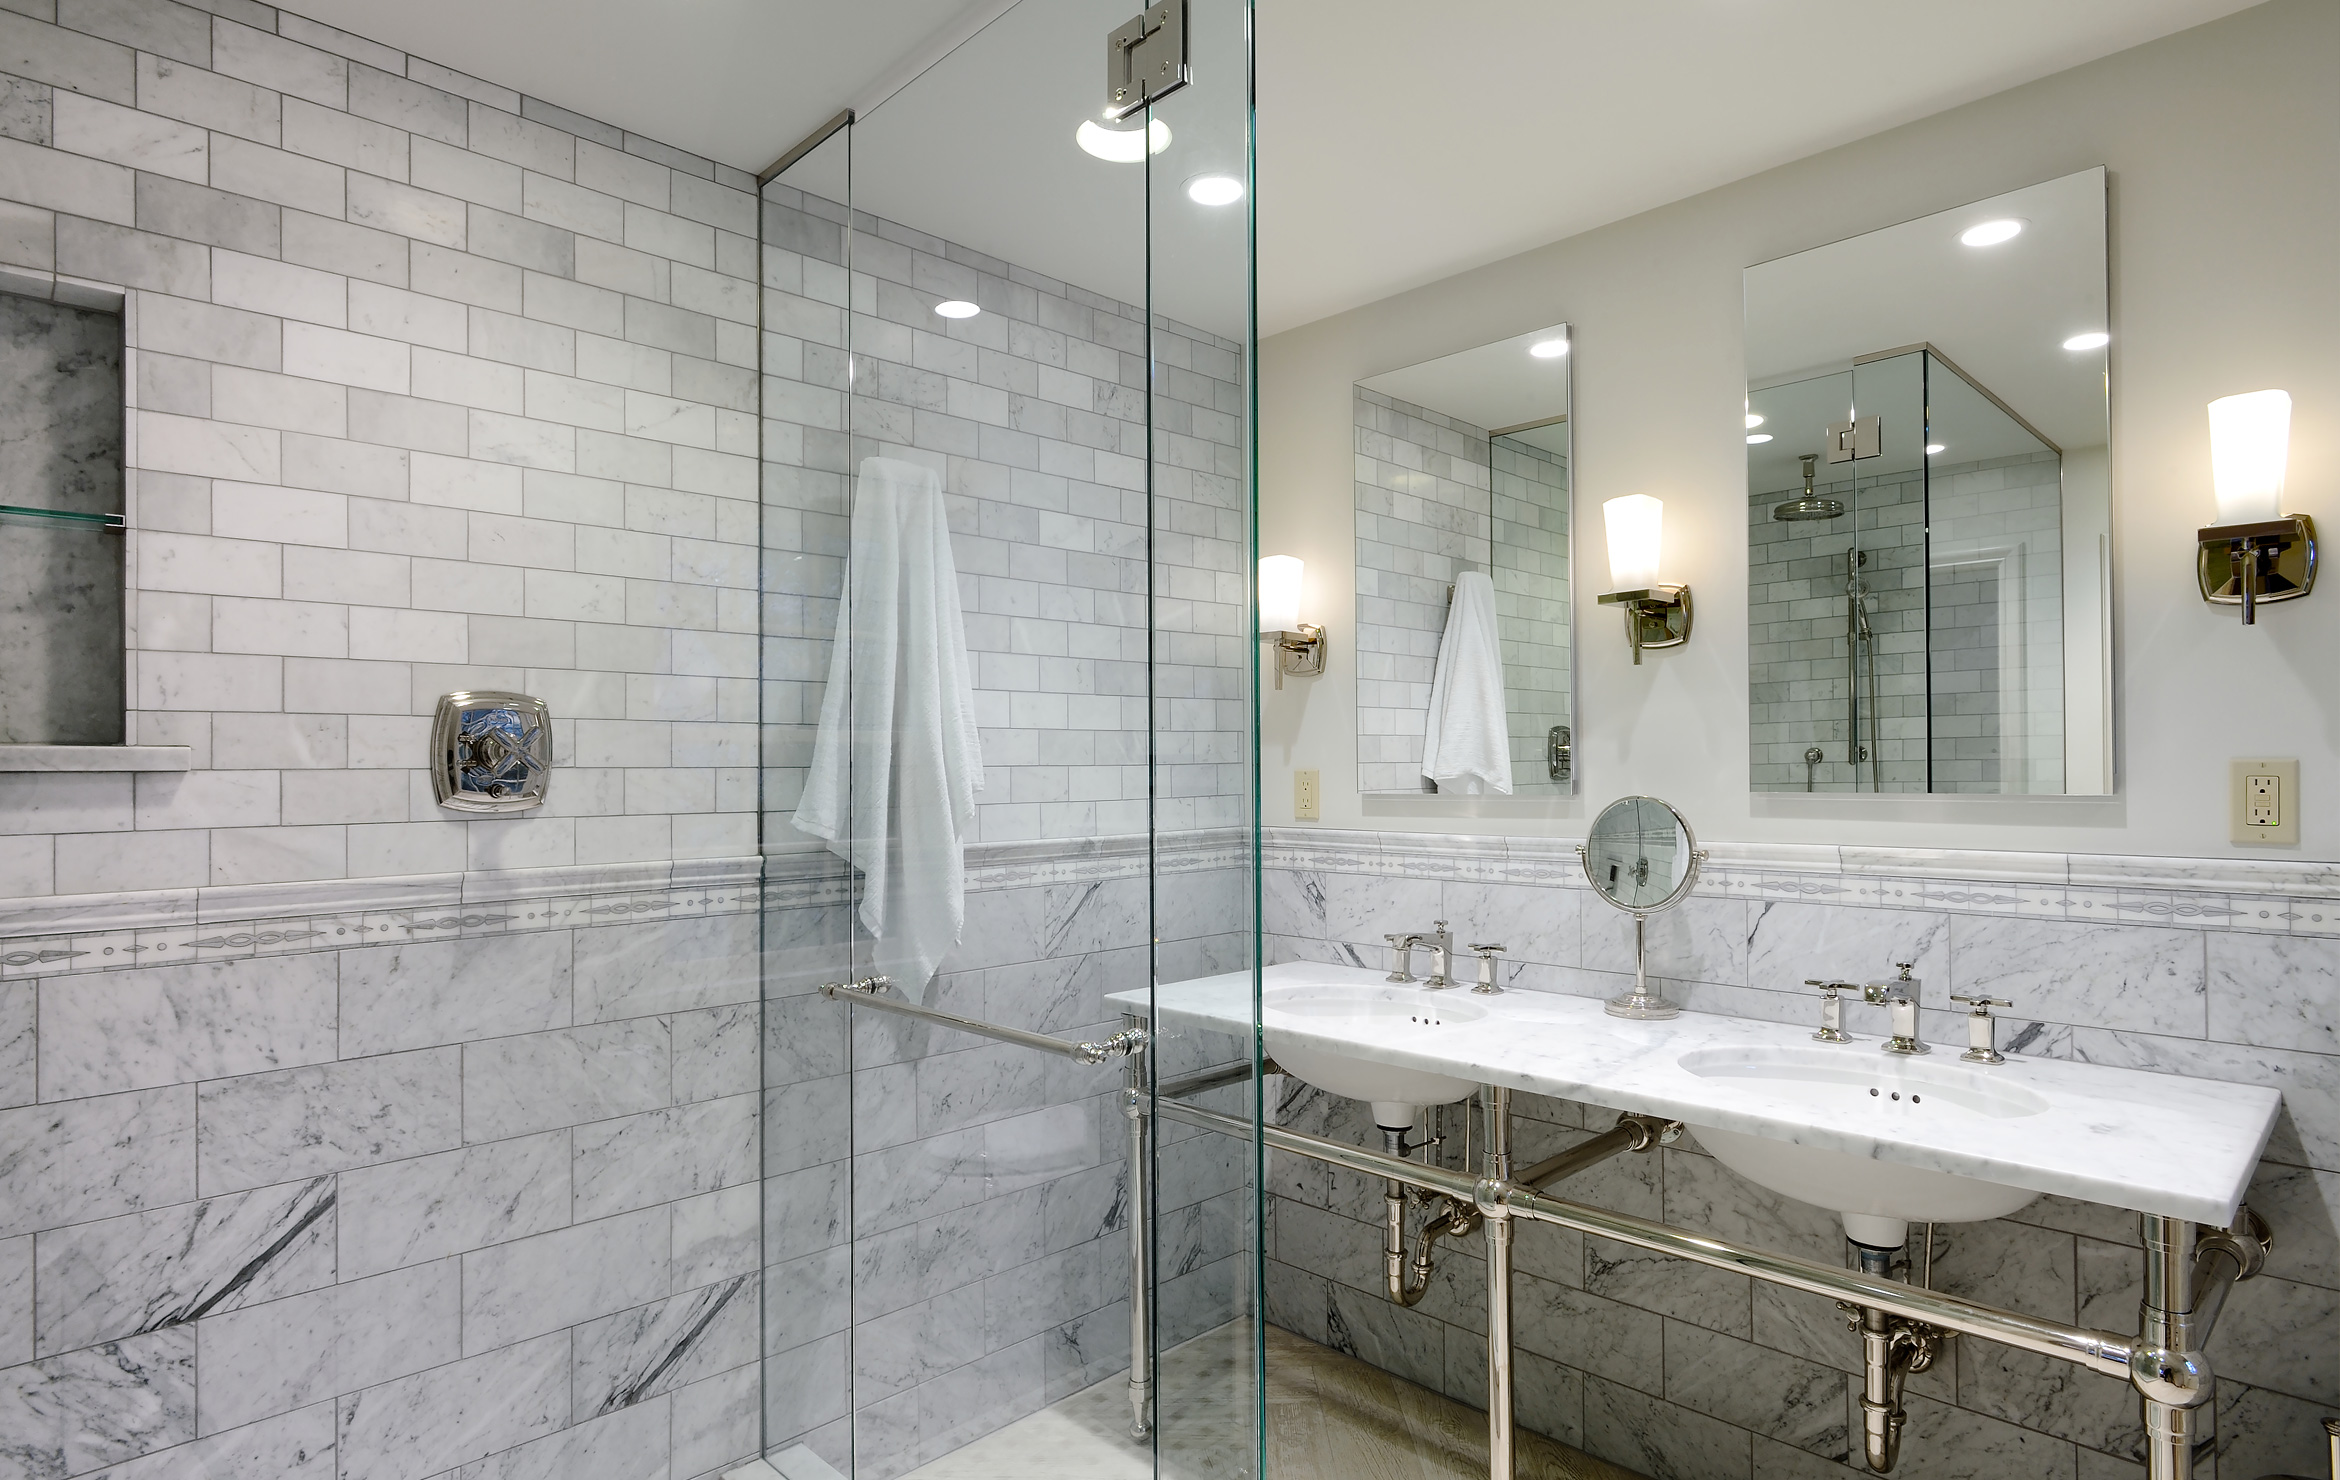 Bathroom Remodels Images Remodels White Bathroom Remodels BAYYNUC On - Is a bathroom remodel worth it